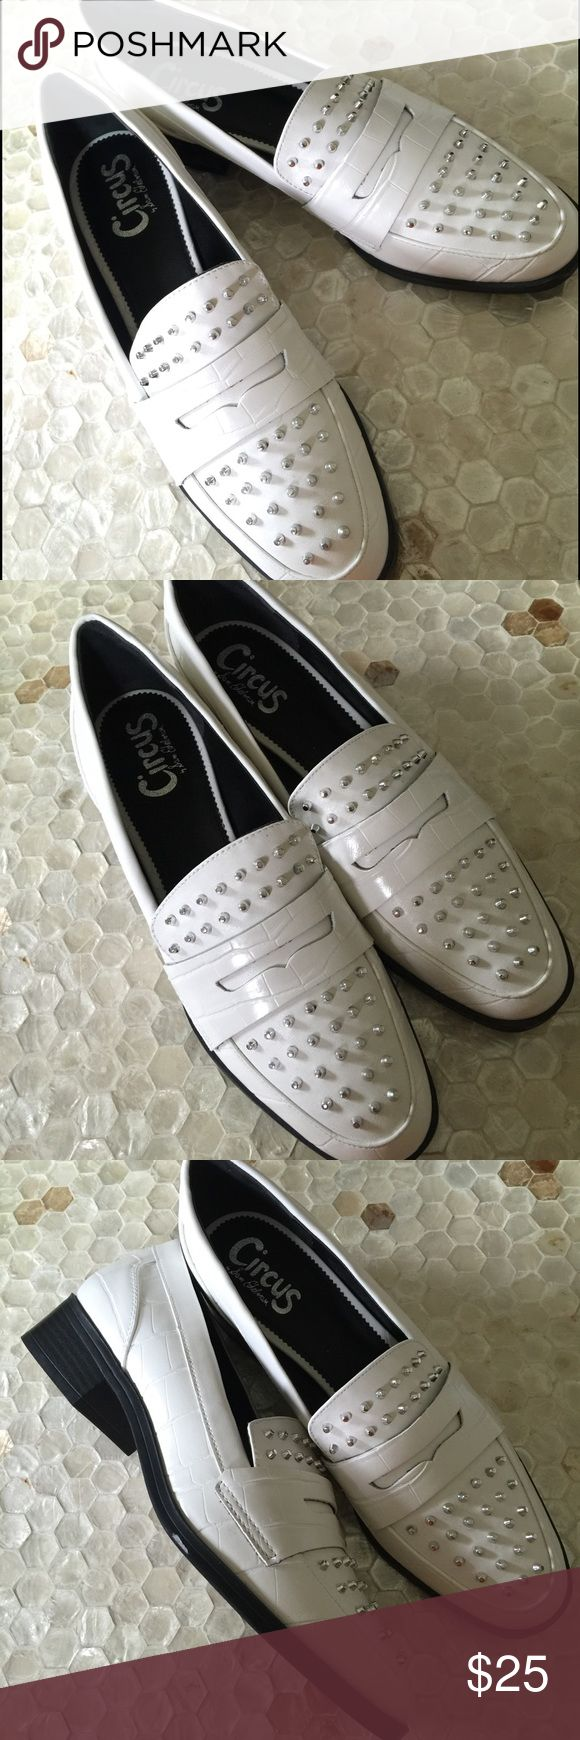 "NWOB Circus by Sam Edelman White Studded Loafers New without box! Never worn in great condition. Circus by Sam Edelman White studded 1.5"" heel shoes. Circus by Sam Edelman Shoes Flats & Loafers"